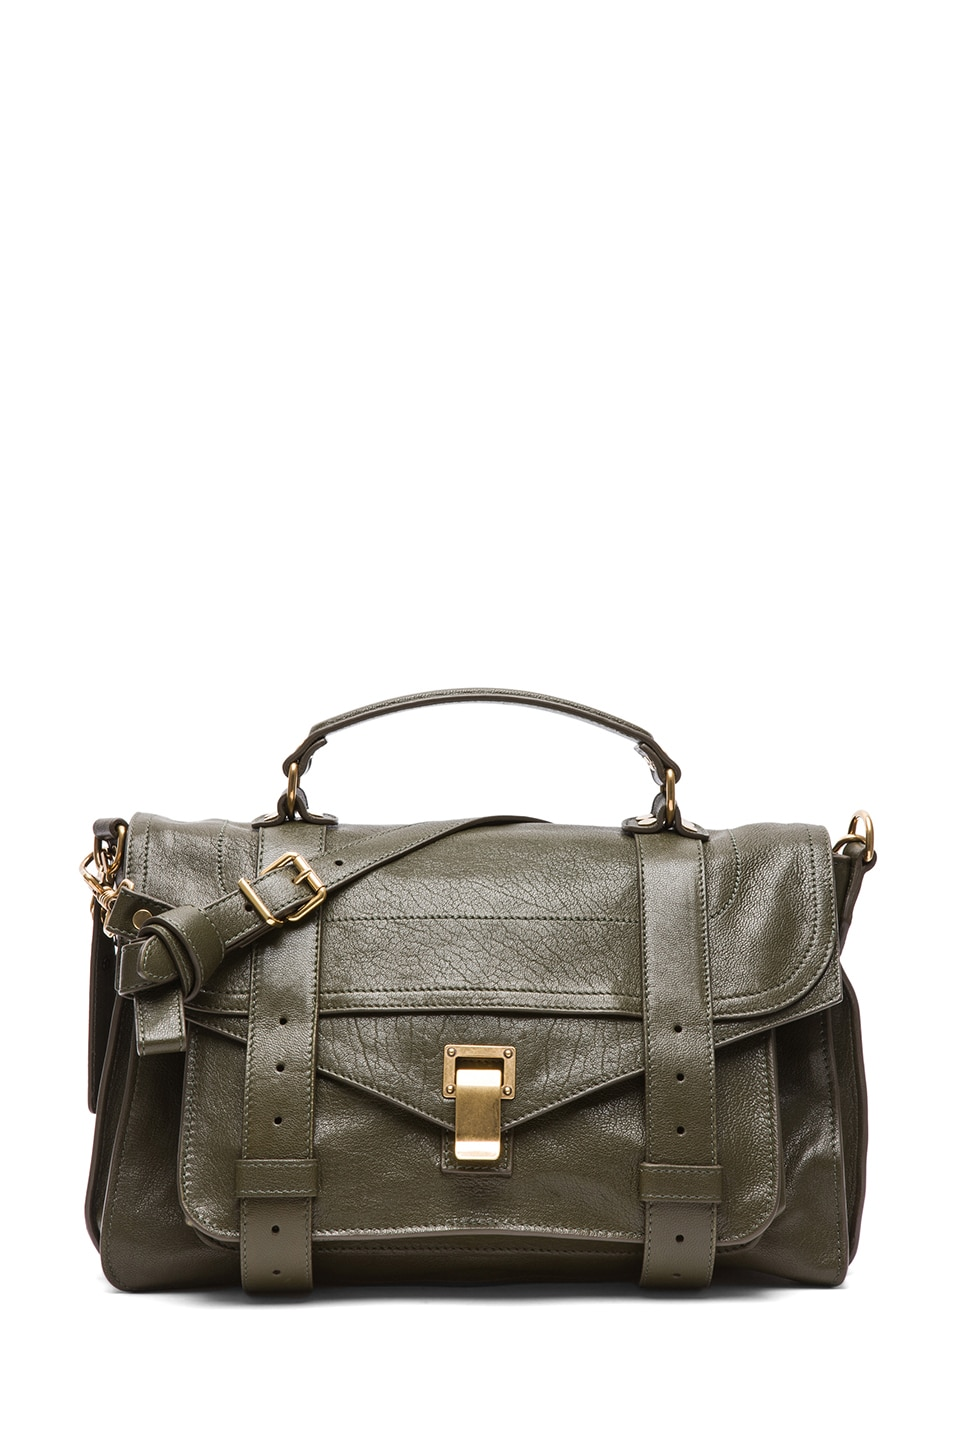 Image 1 of Proenza Schouler Medium PS1 Leather Satchel in Military